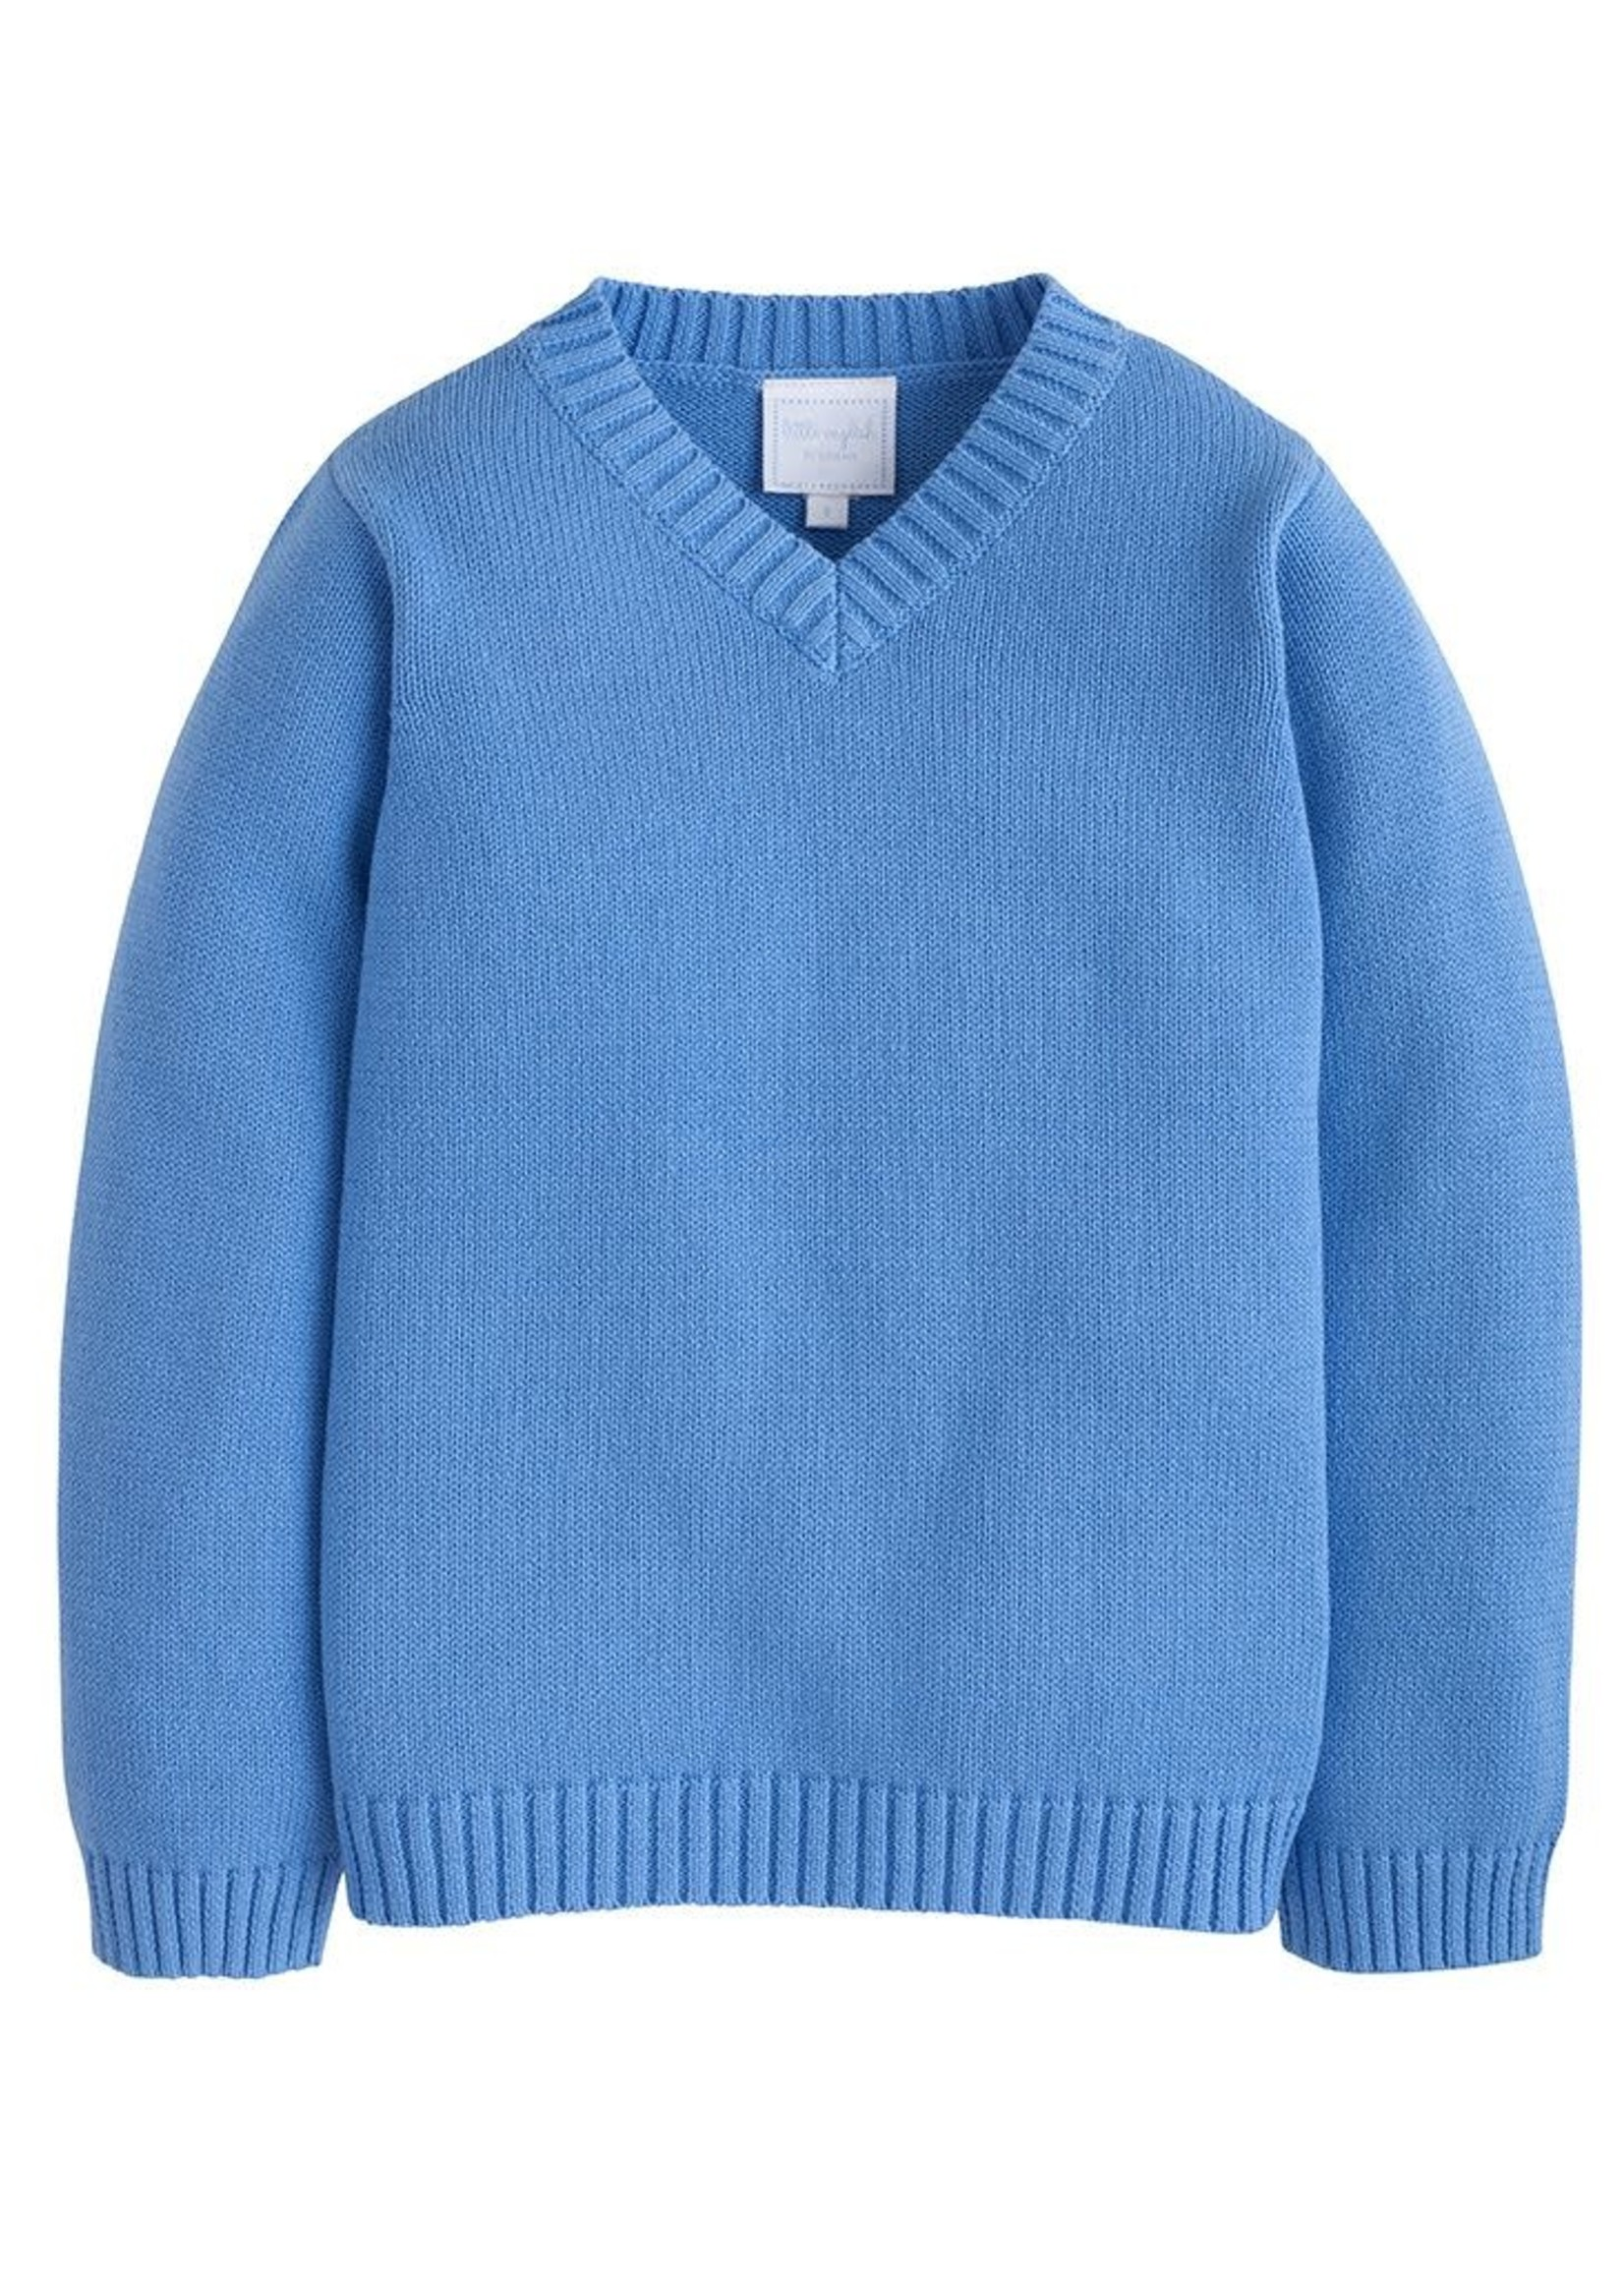 Little English V-Neck Sweater - Airy Blue